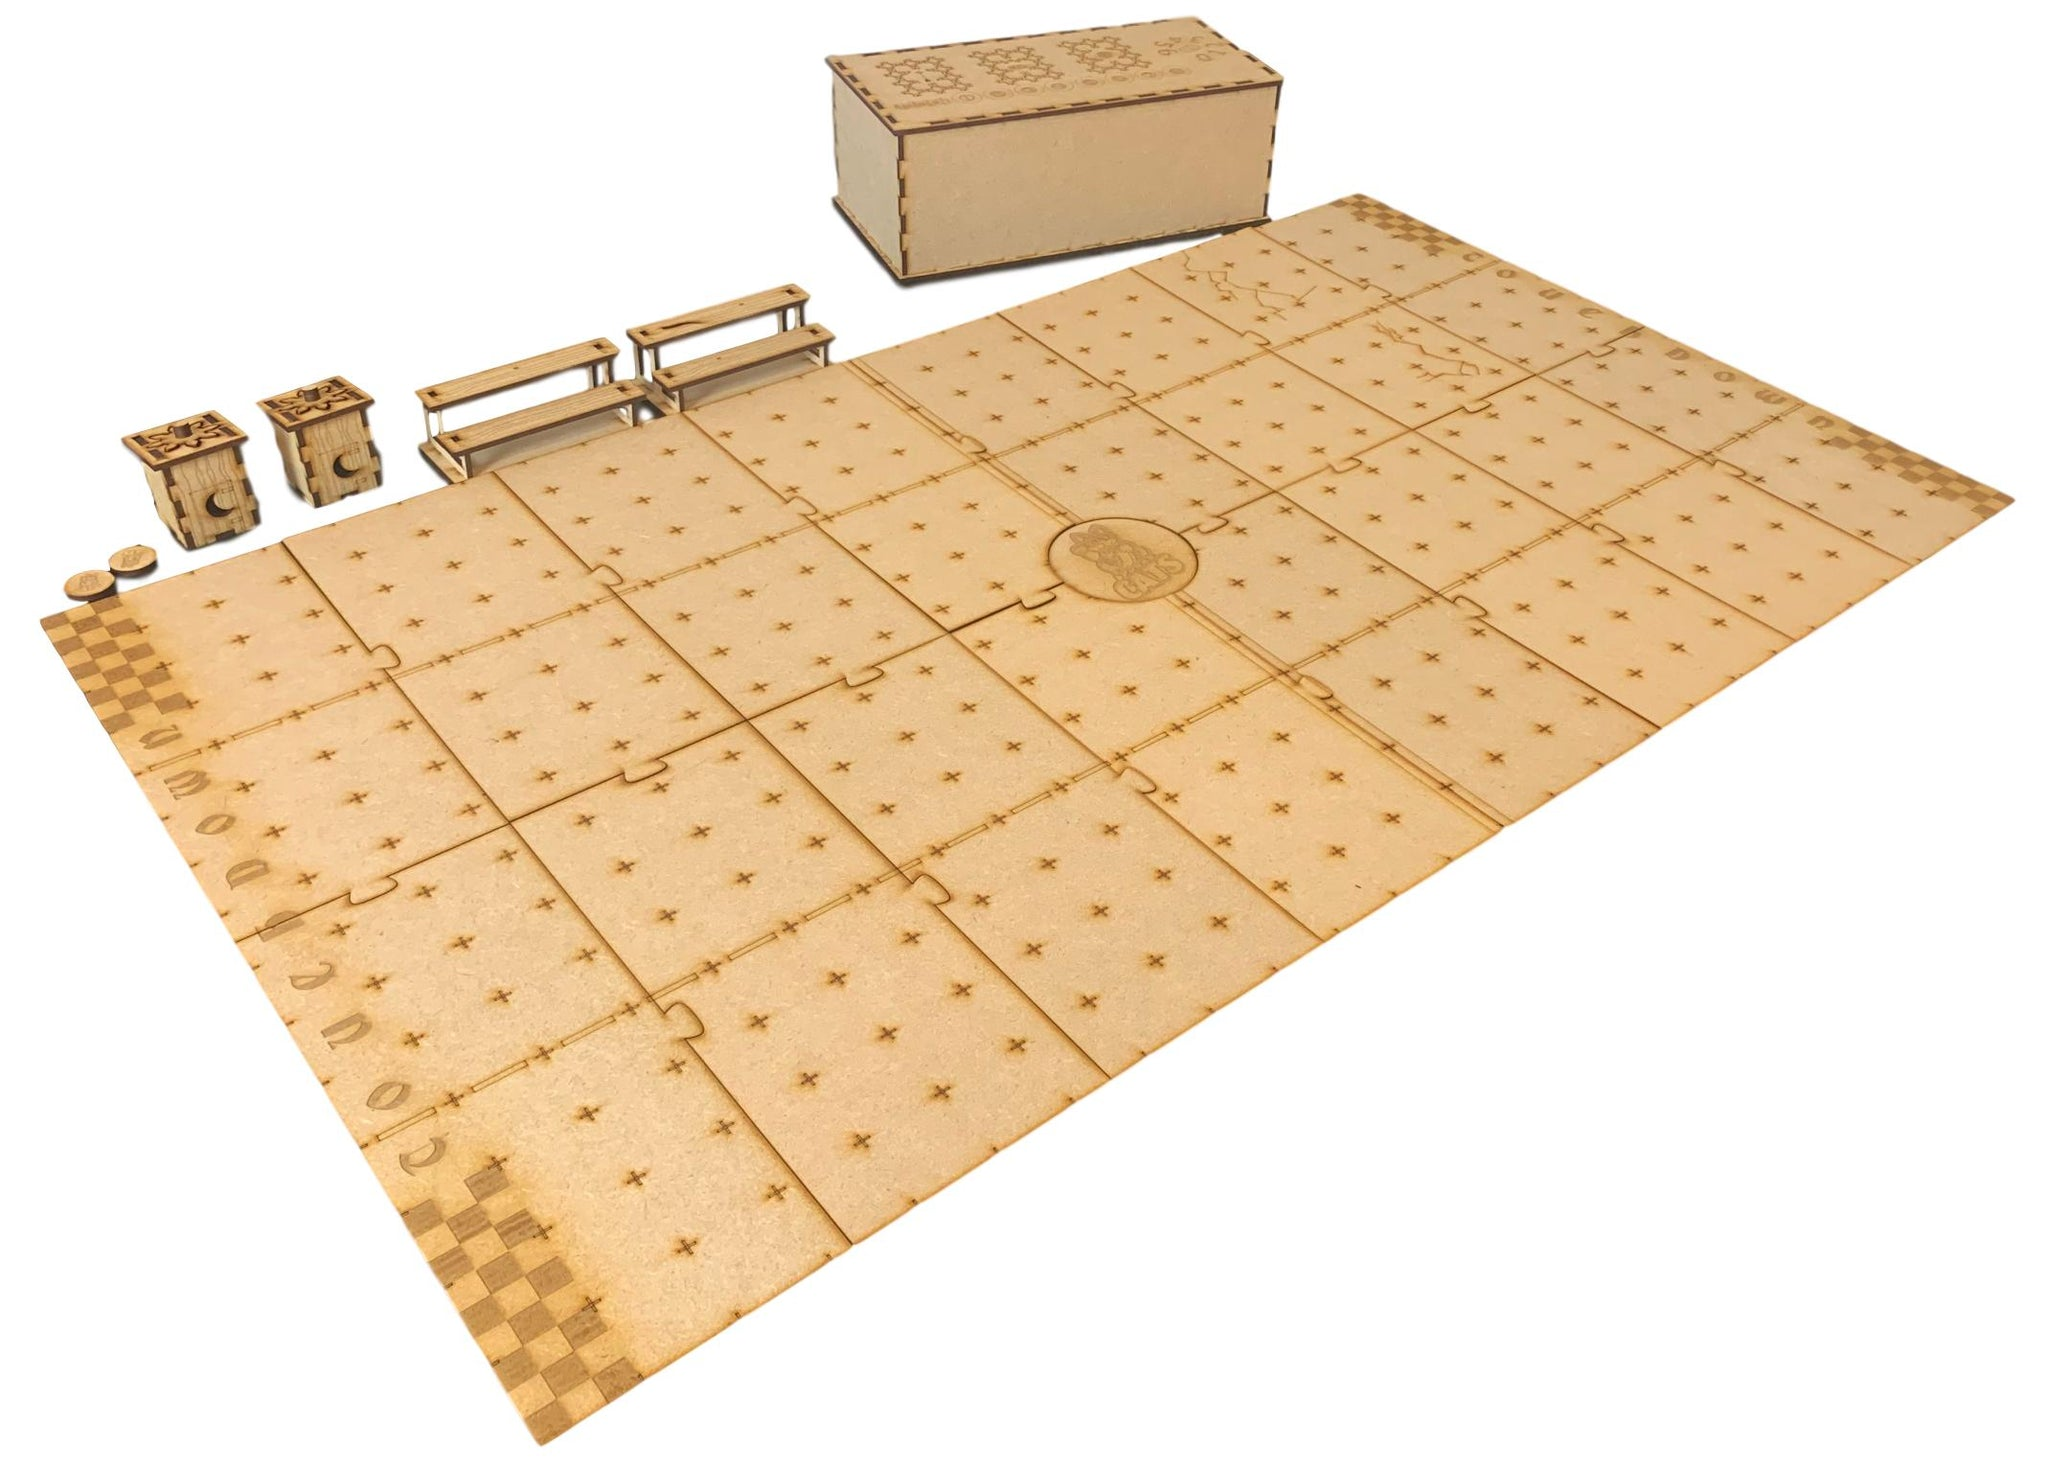 Blood Bowl / Fantasy Football Compatible Pitch Deluxe Board Set